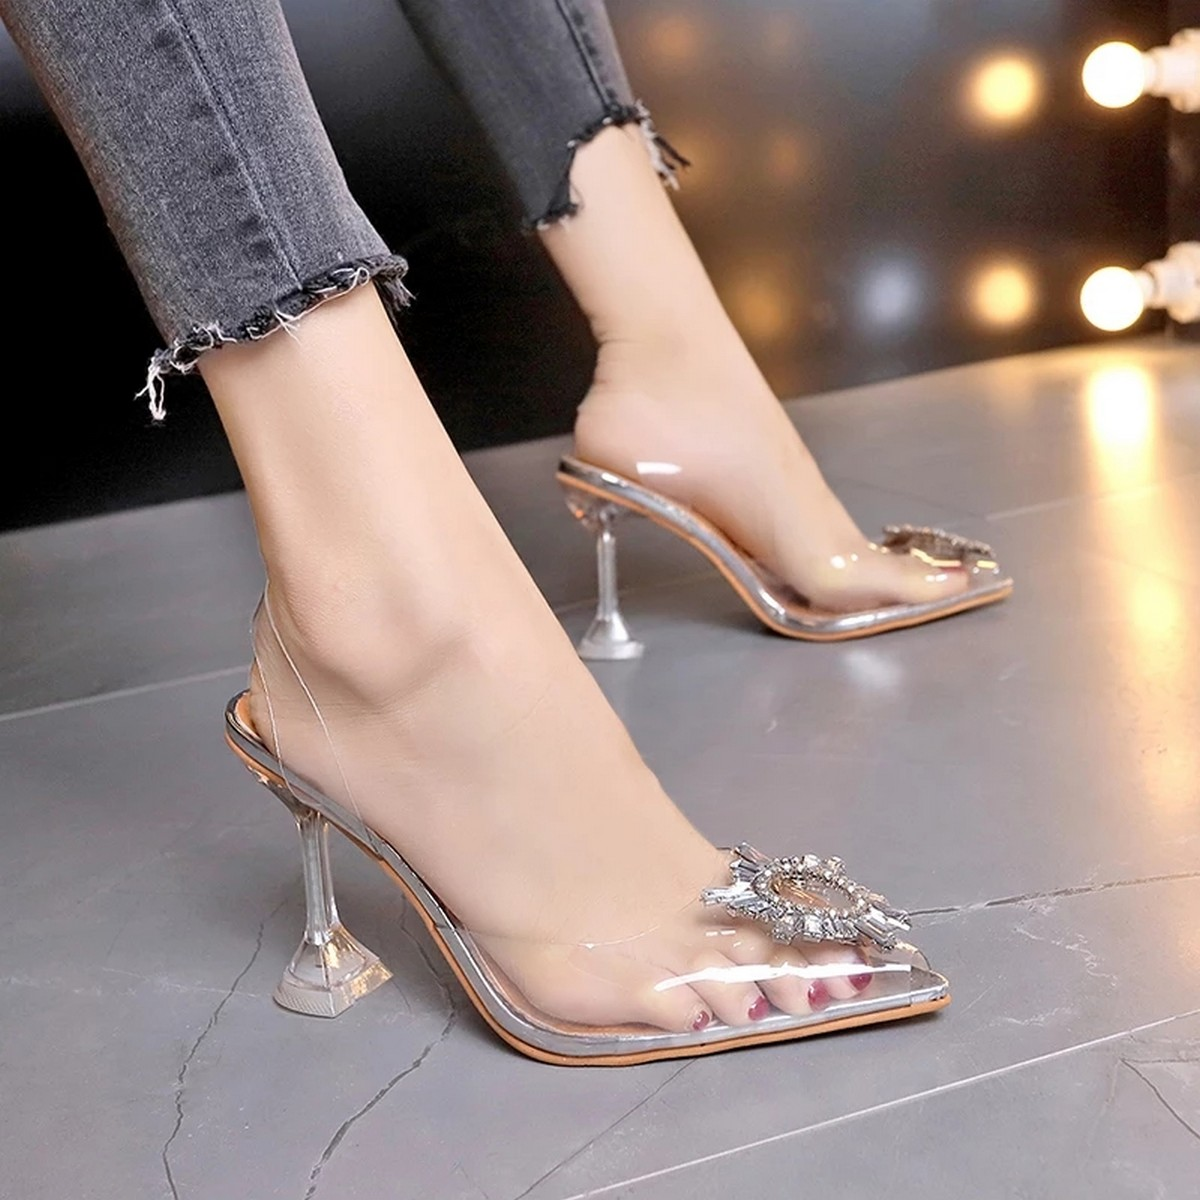 Transparent Pointed Heels, Trending and Stylish Clear Vinyl Heels for Girls, kitten heels for women